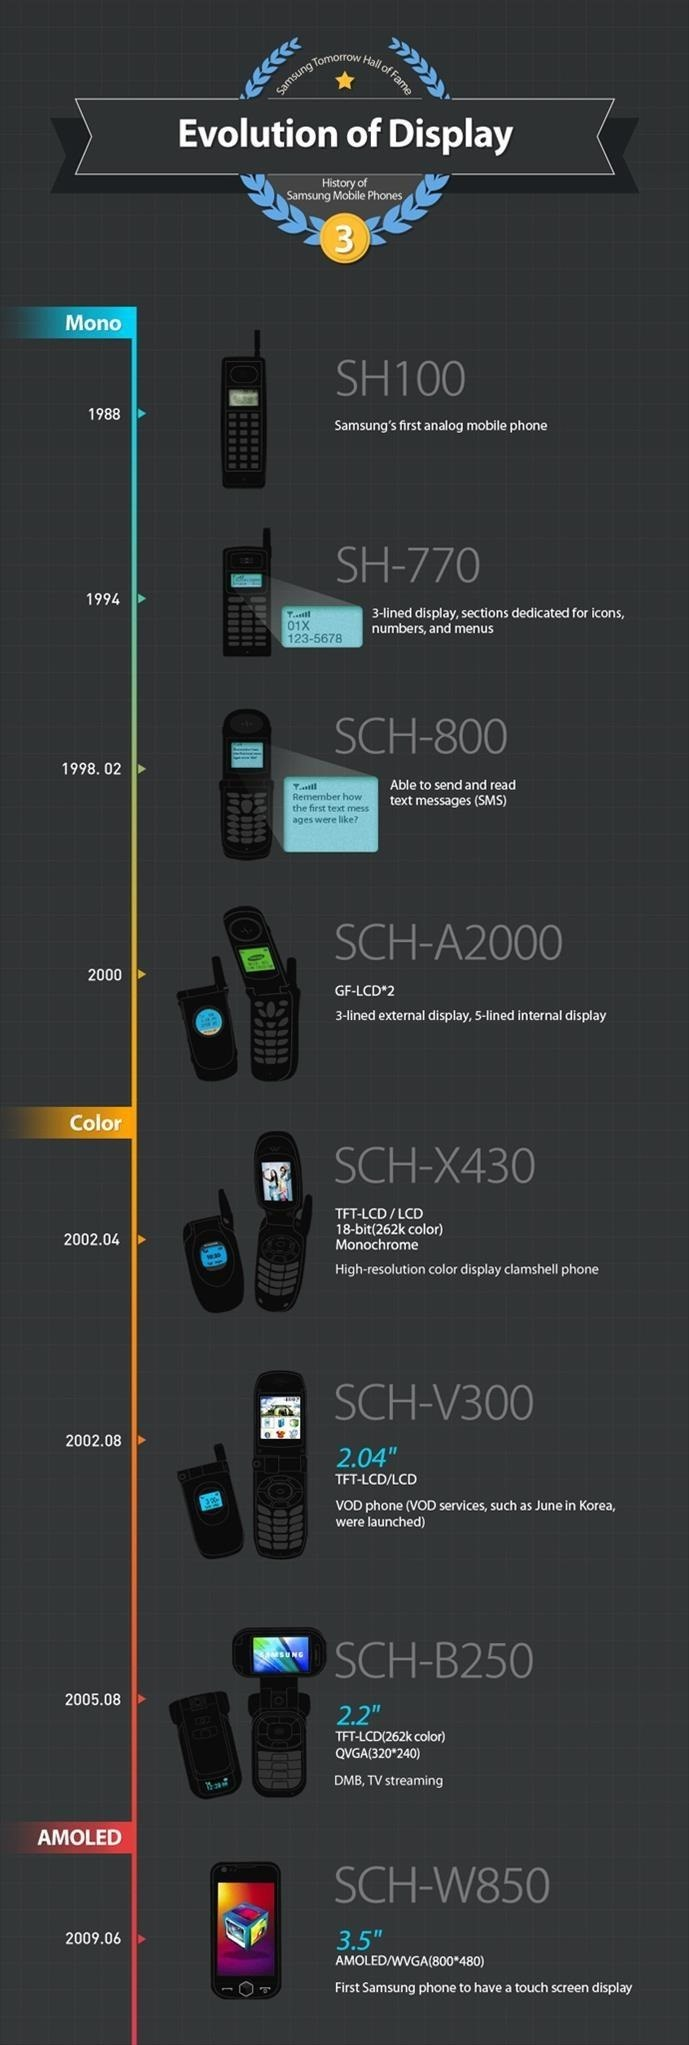 The Evolution of Samsung's Displays: From SH100 Analog Mobile to Galaxy Note 3